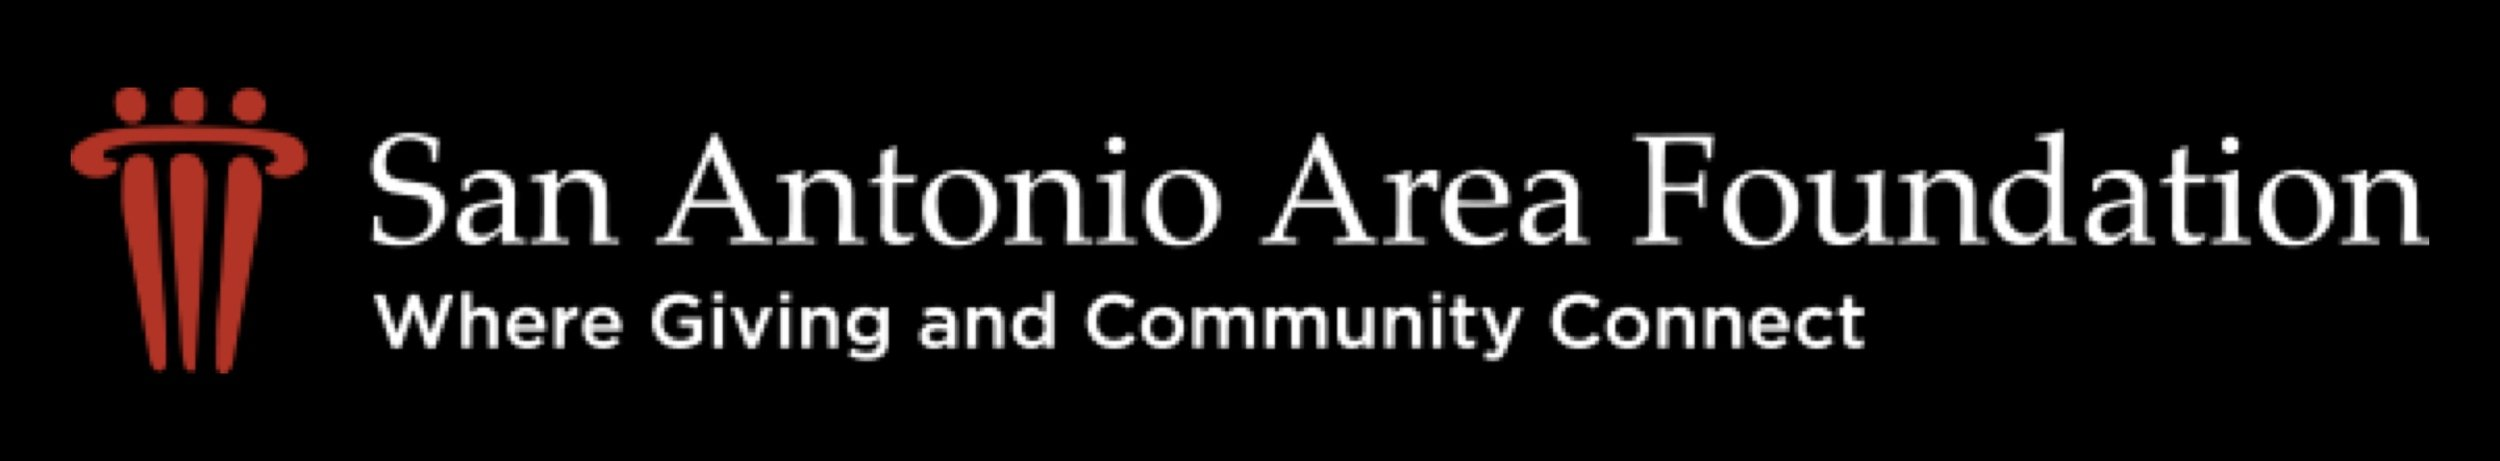 san antonio area foundation logo.jpg